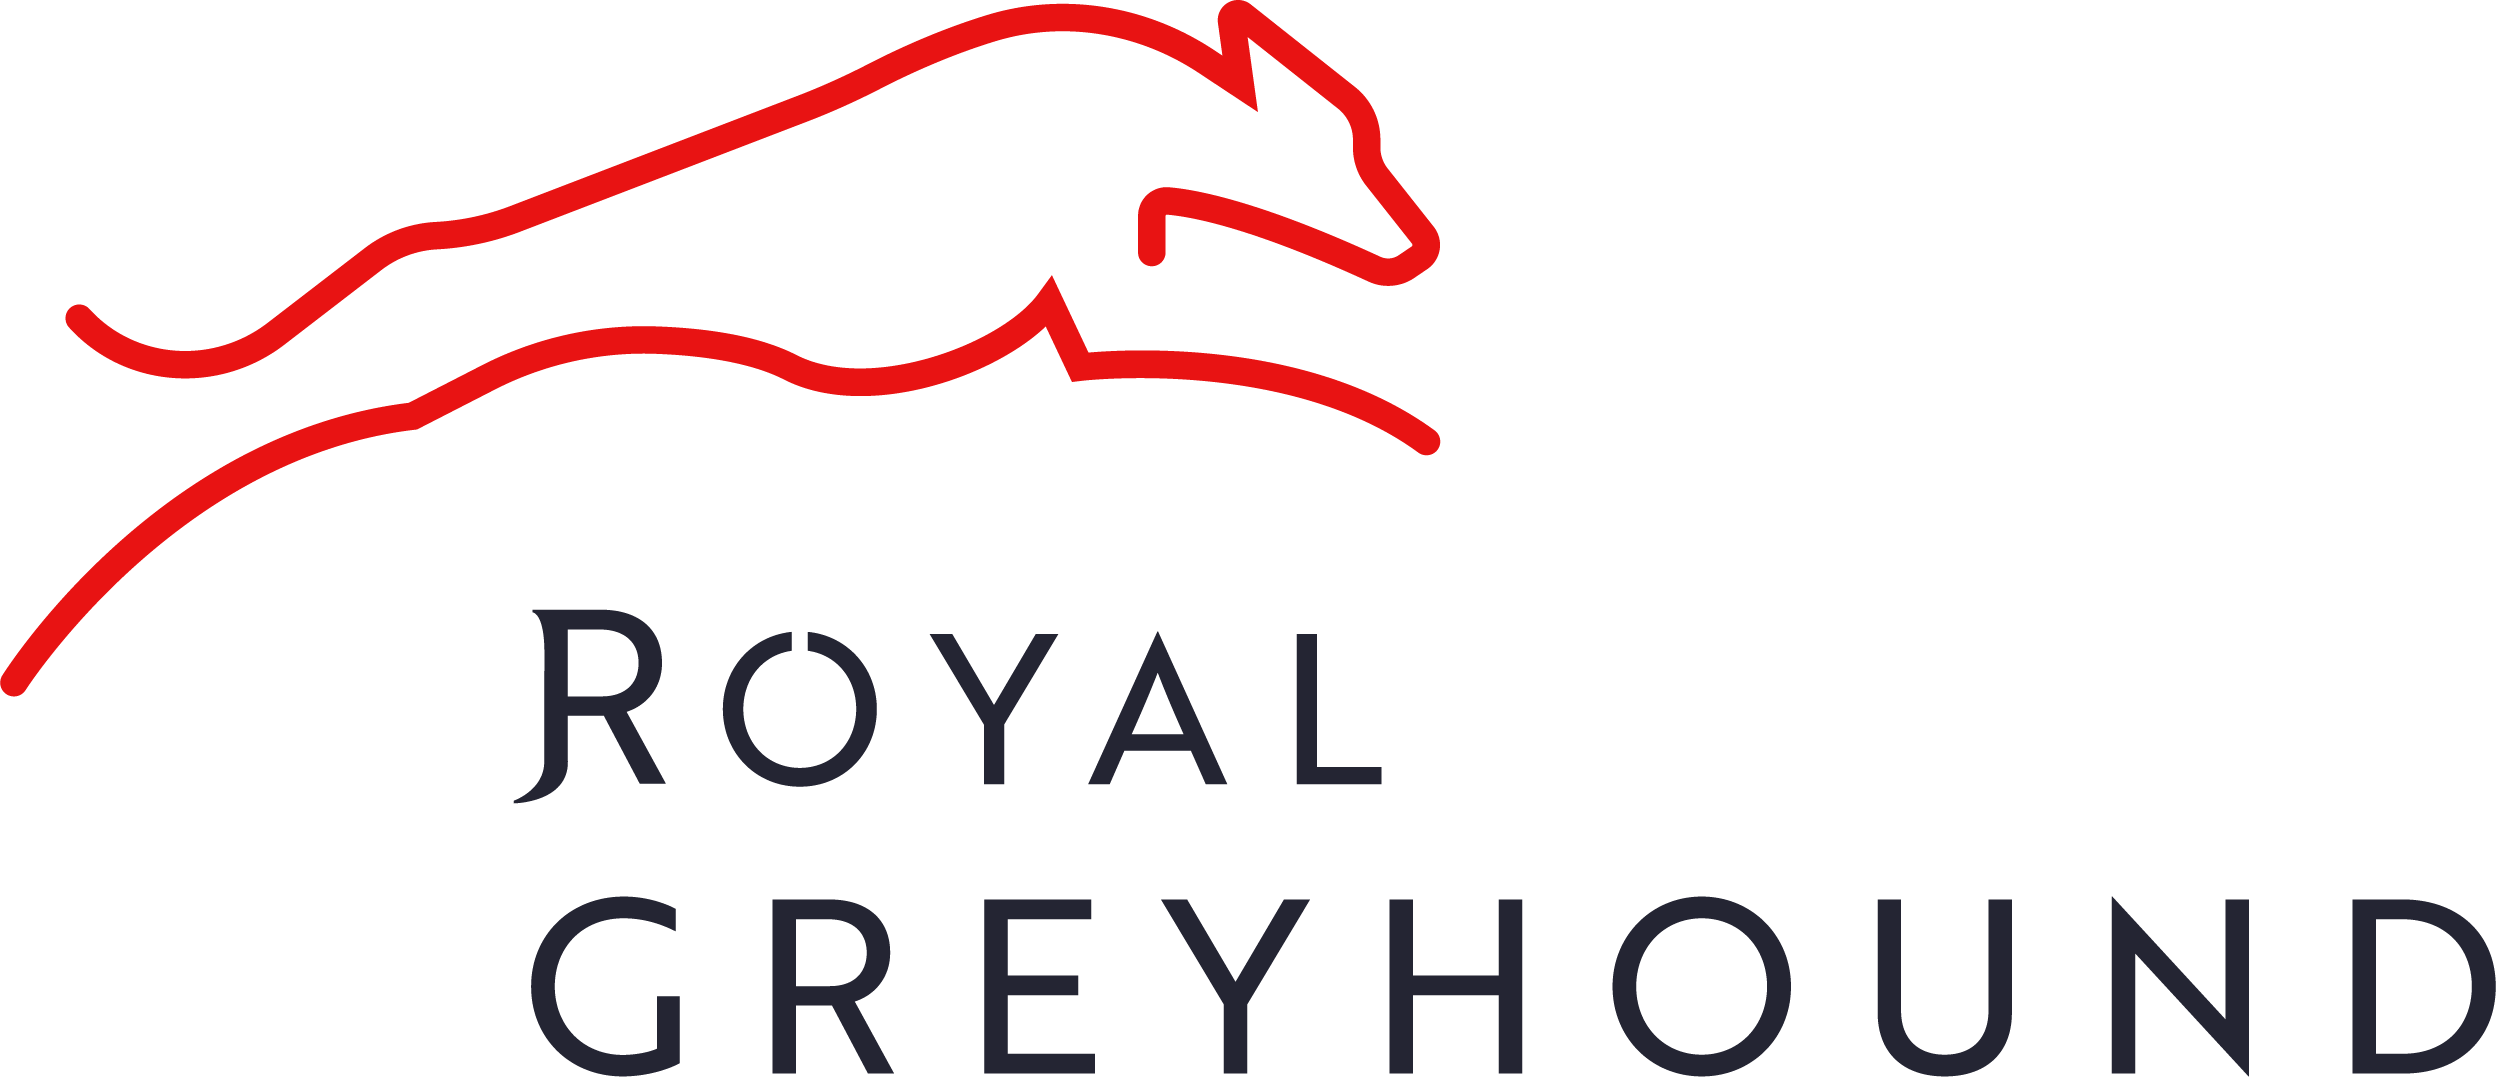 Royal GreyHound Pte Ltd